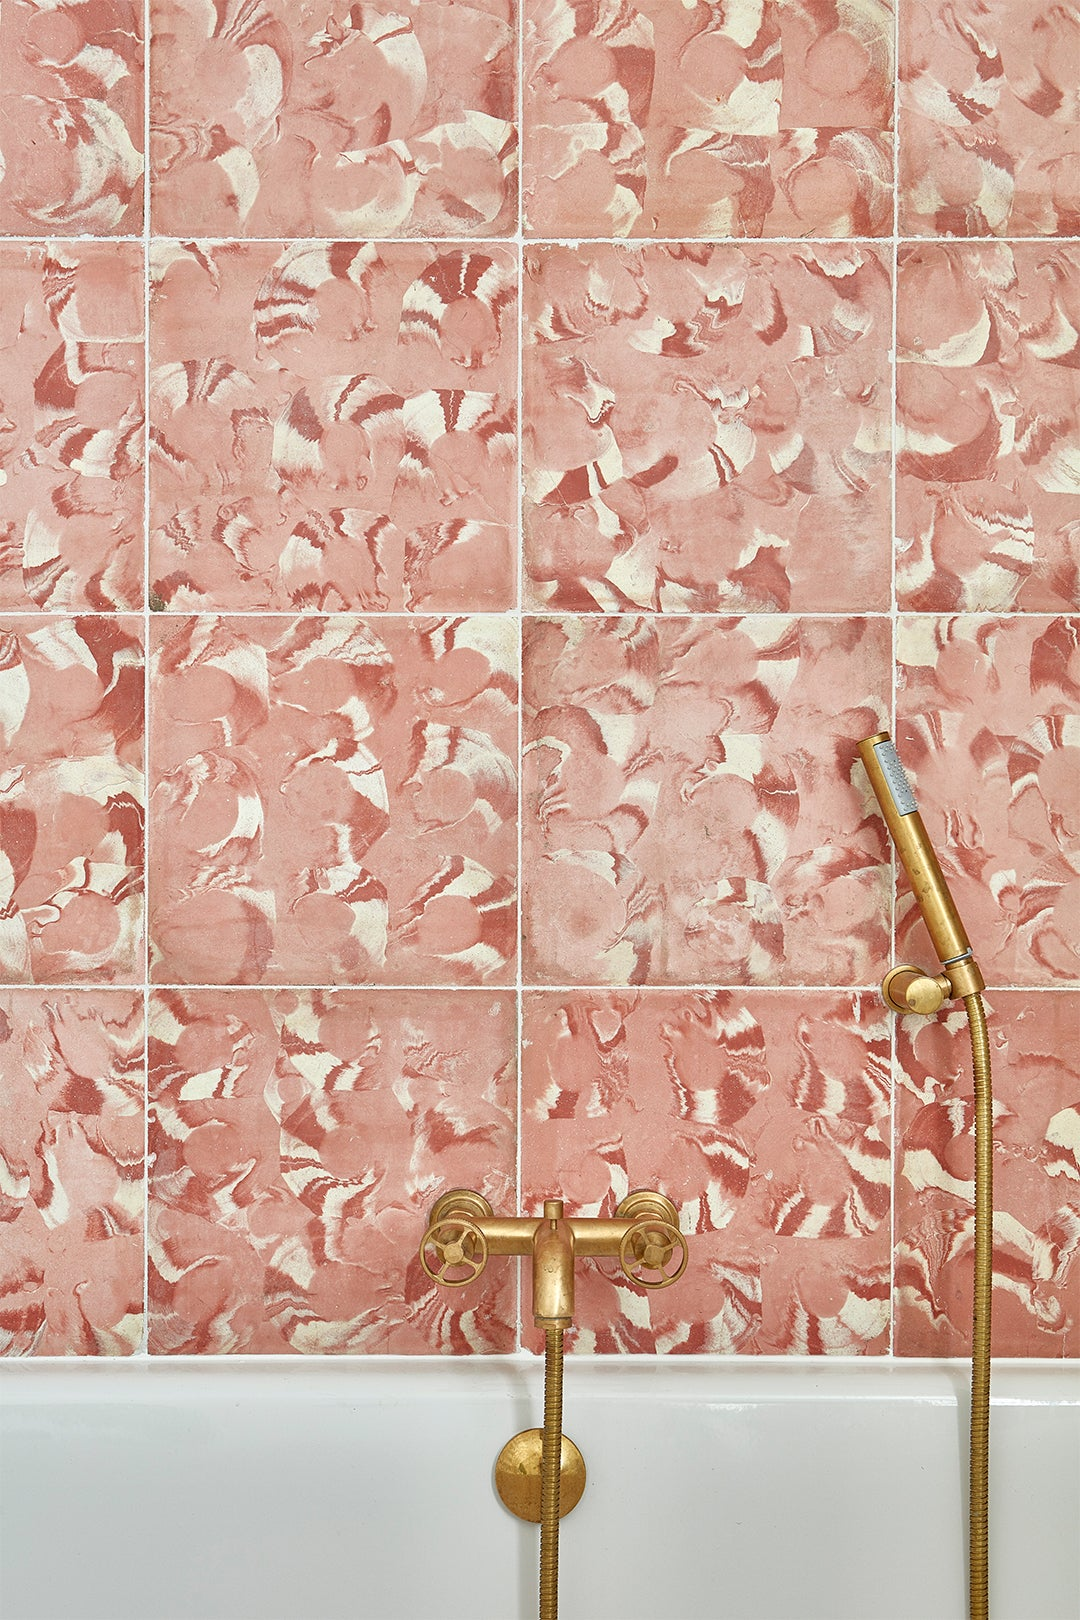 close-up of swirly pink tile